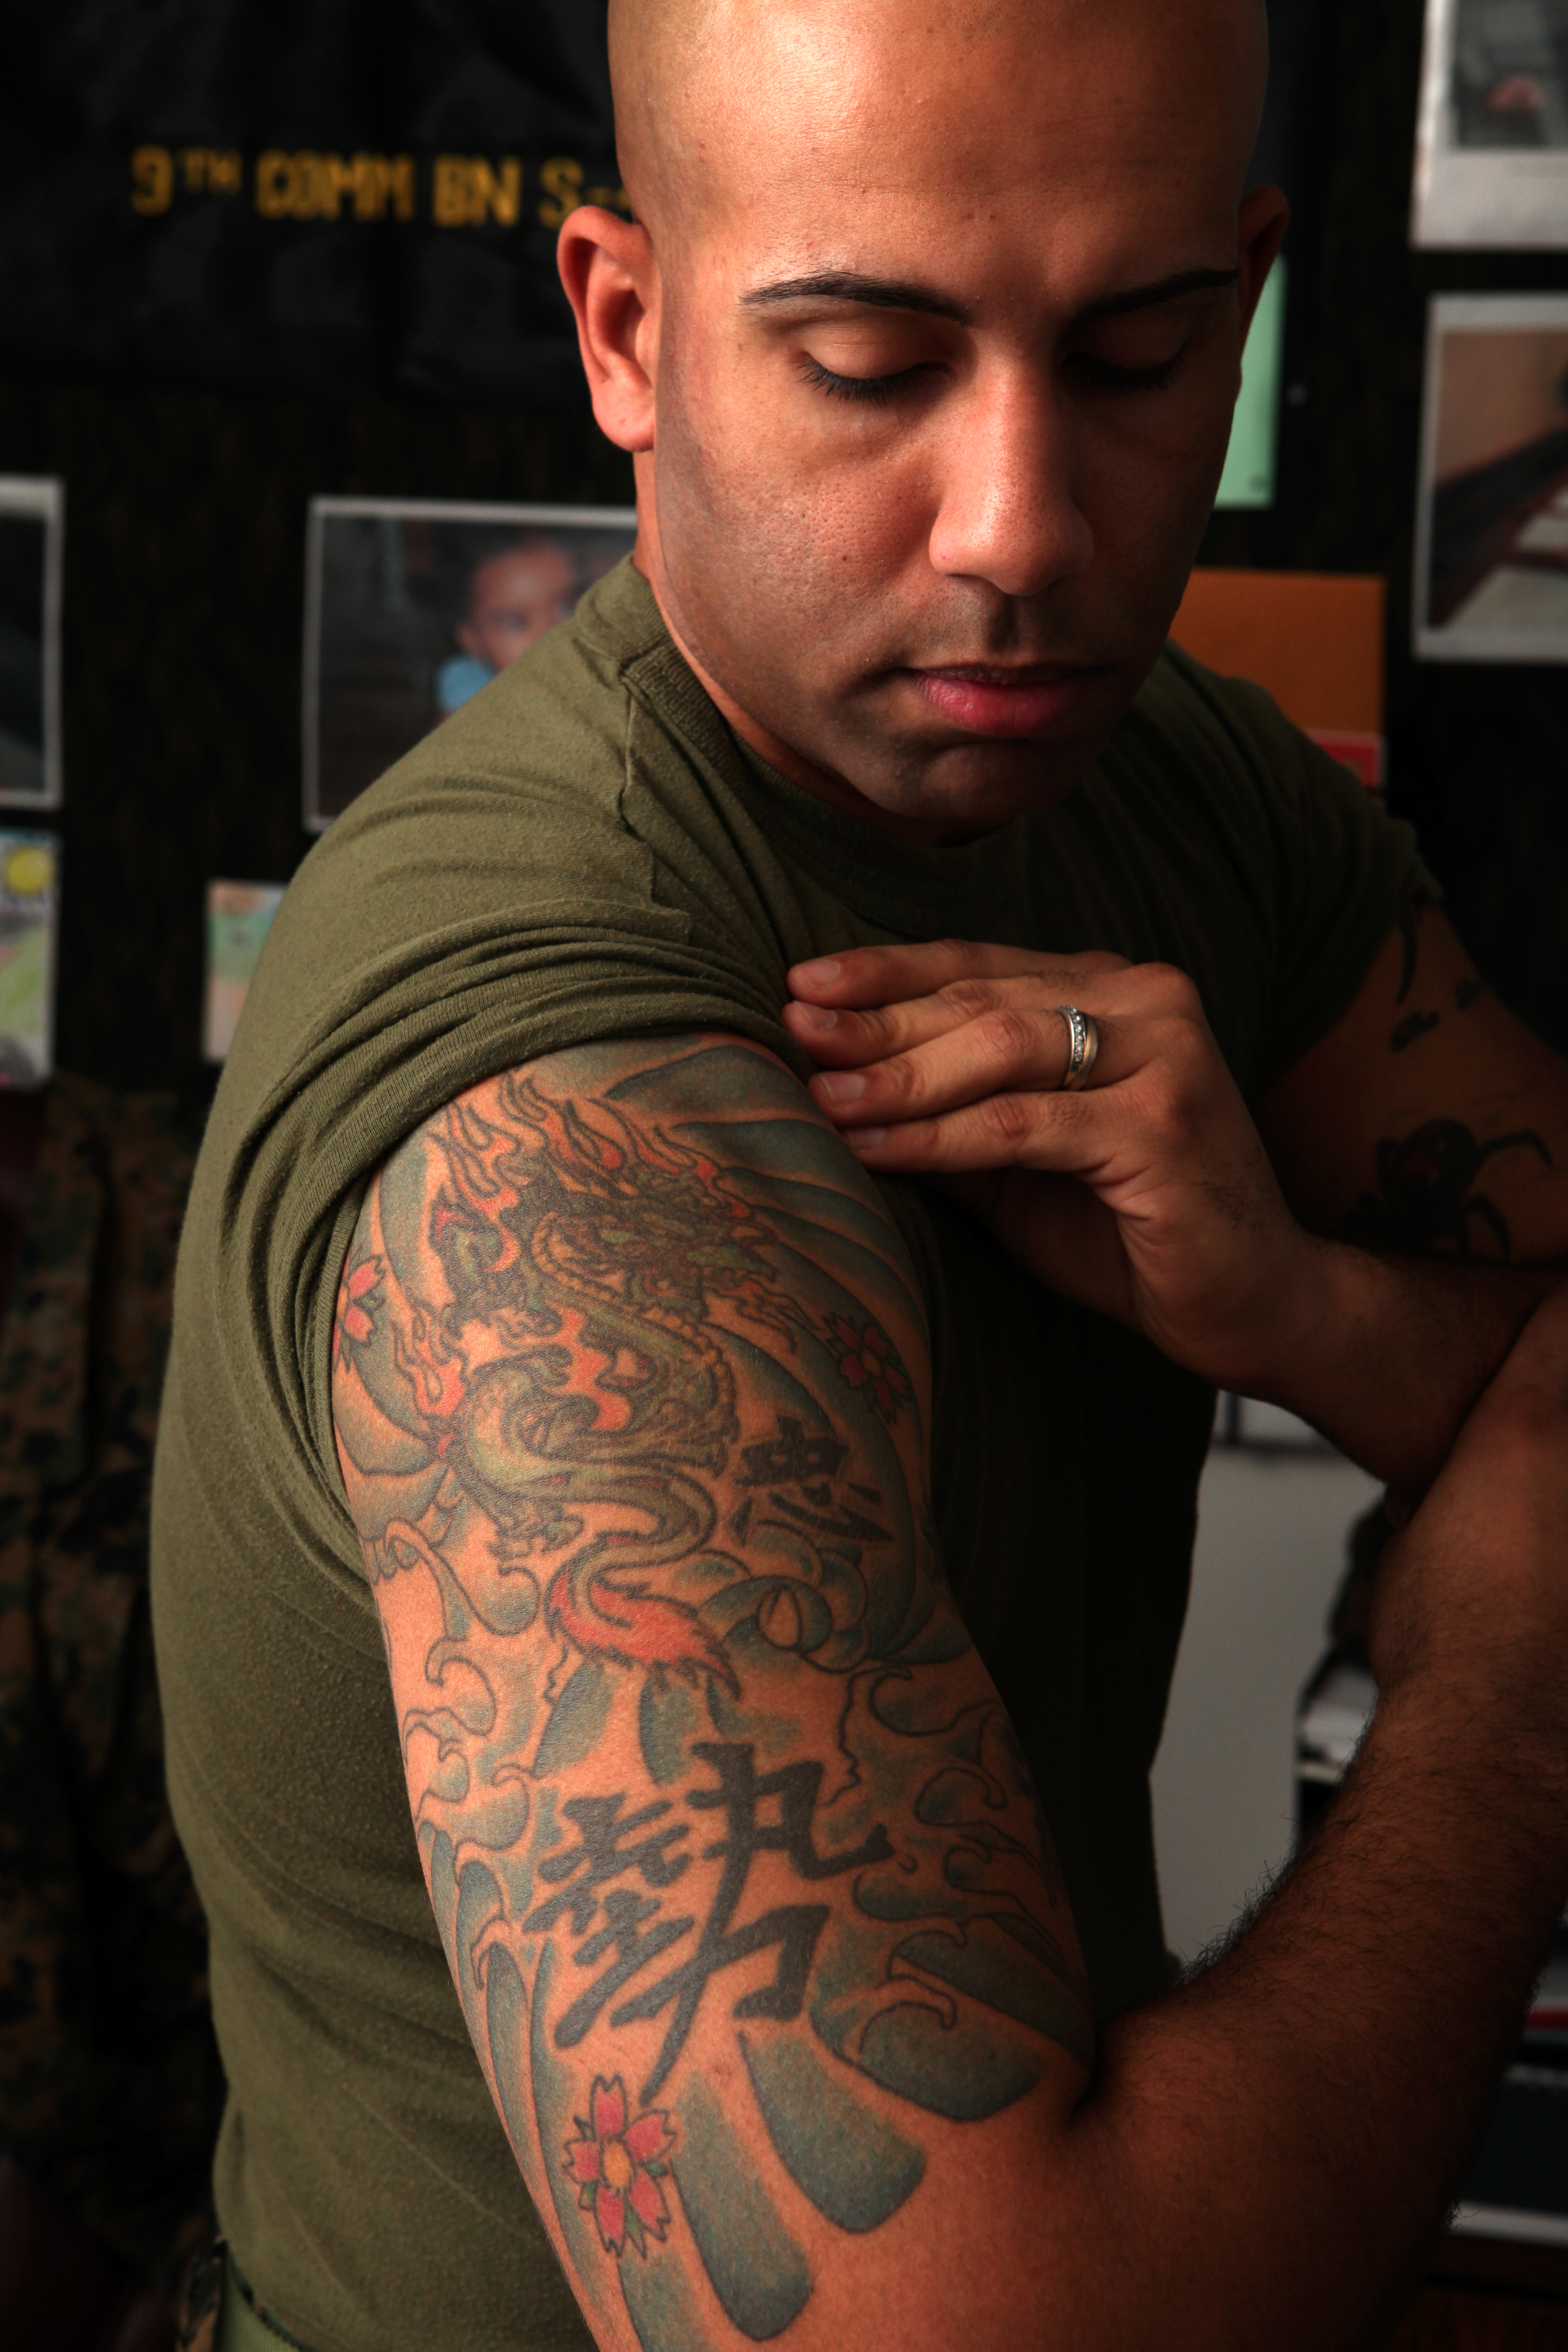 marine corps update its tattoo policy after review